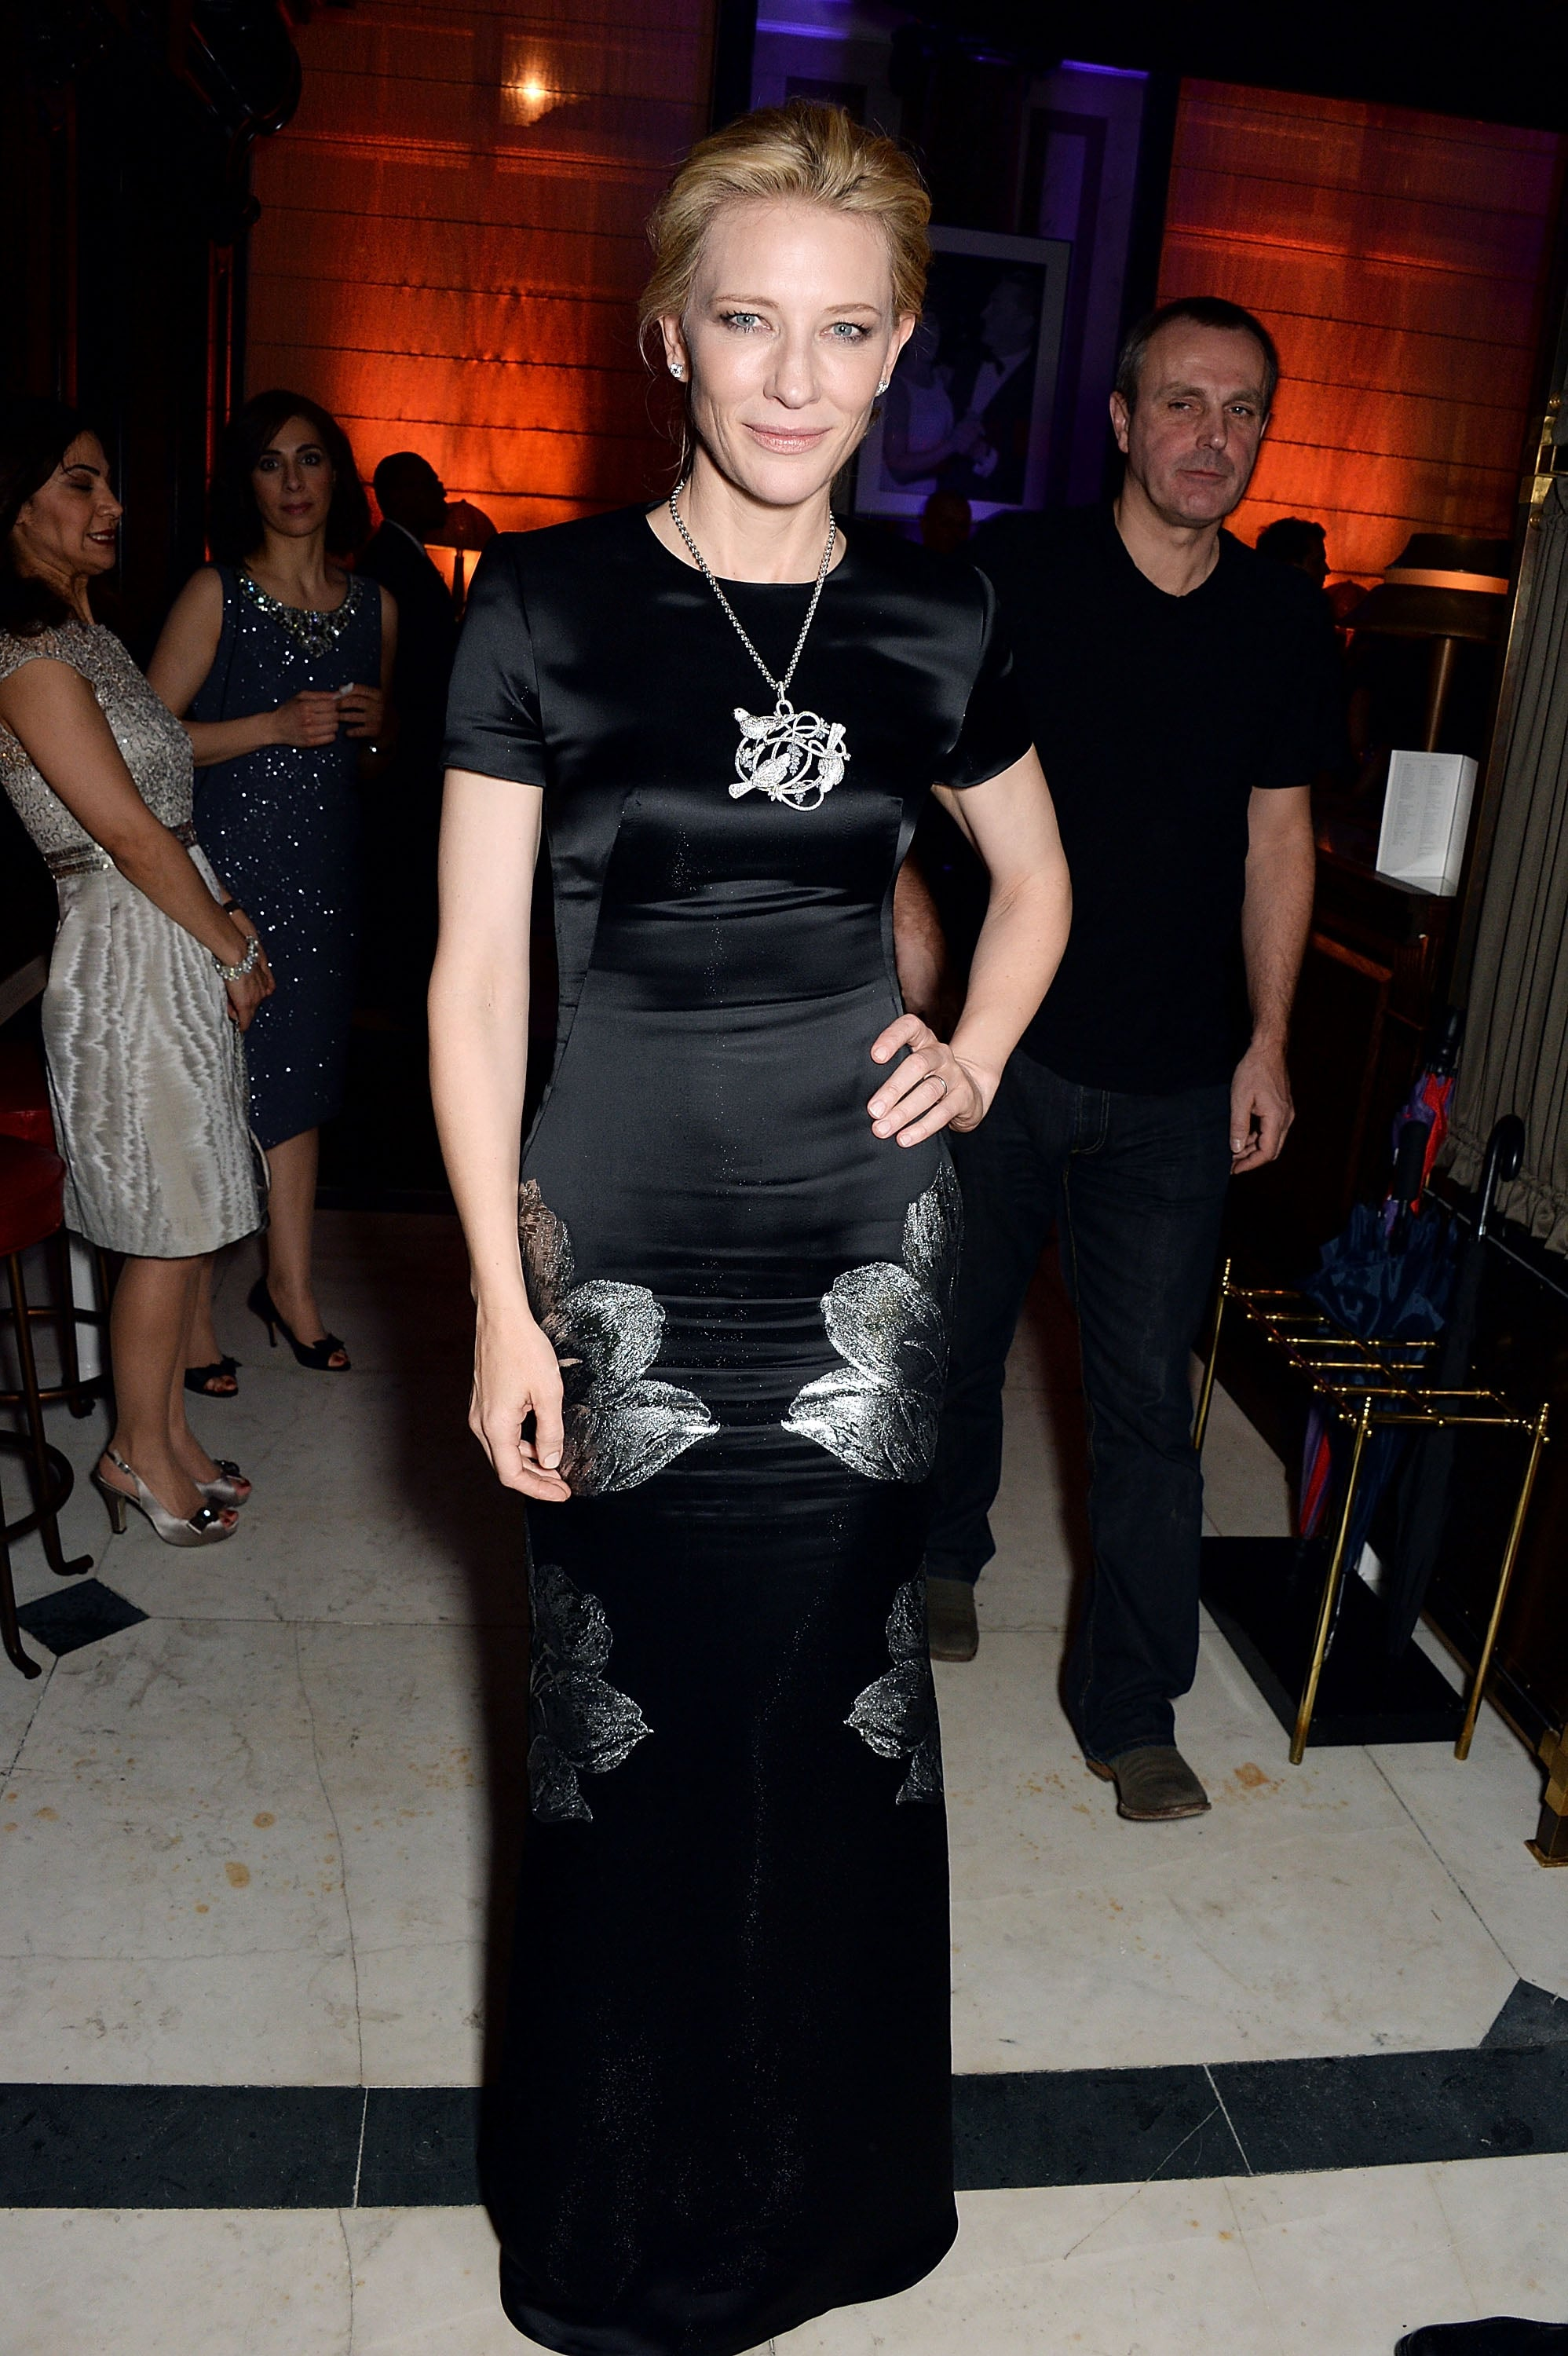 Cate Blanchett made an appearance at Harvey's party.